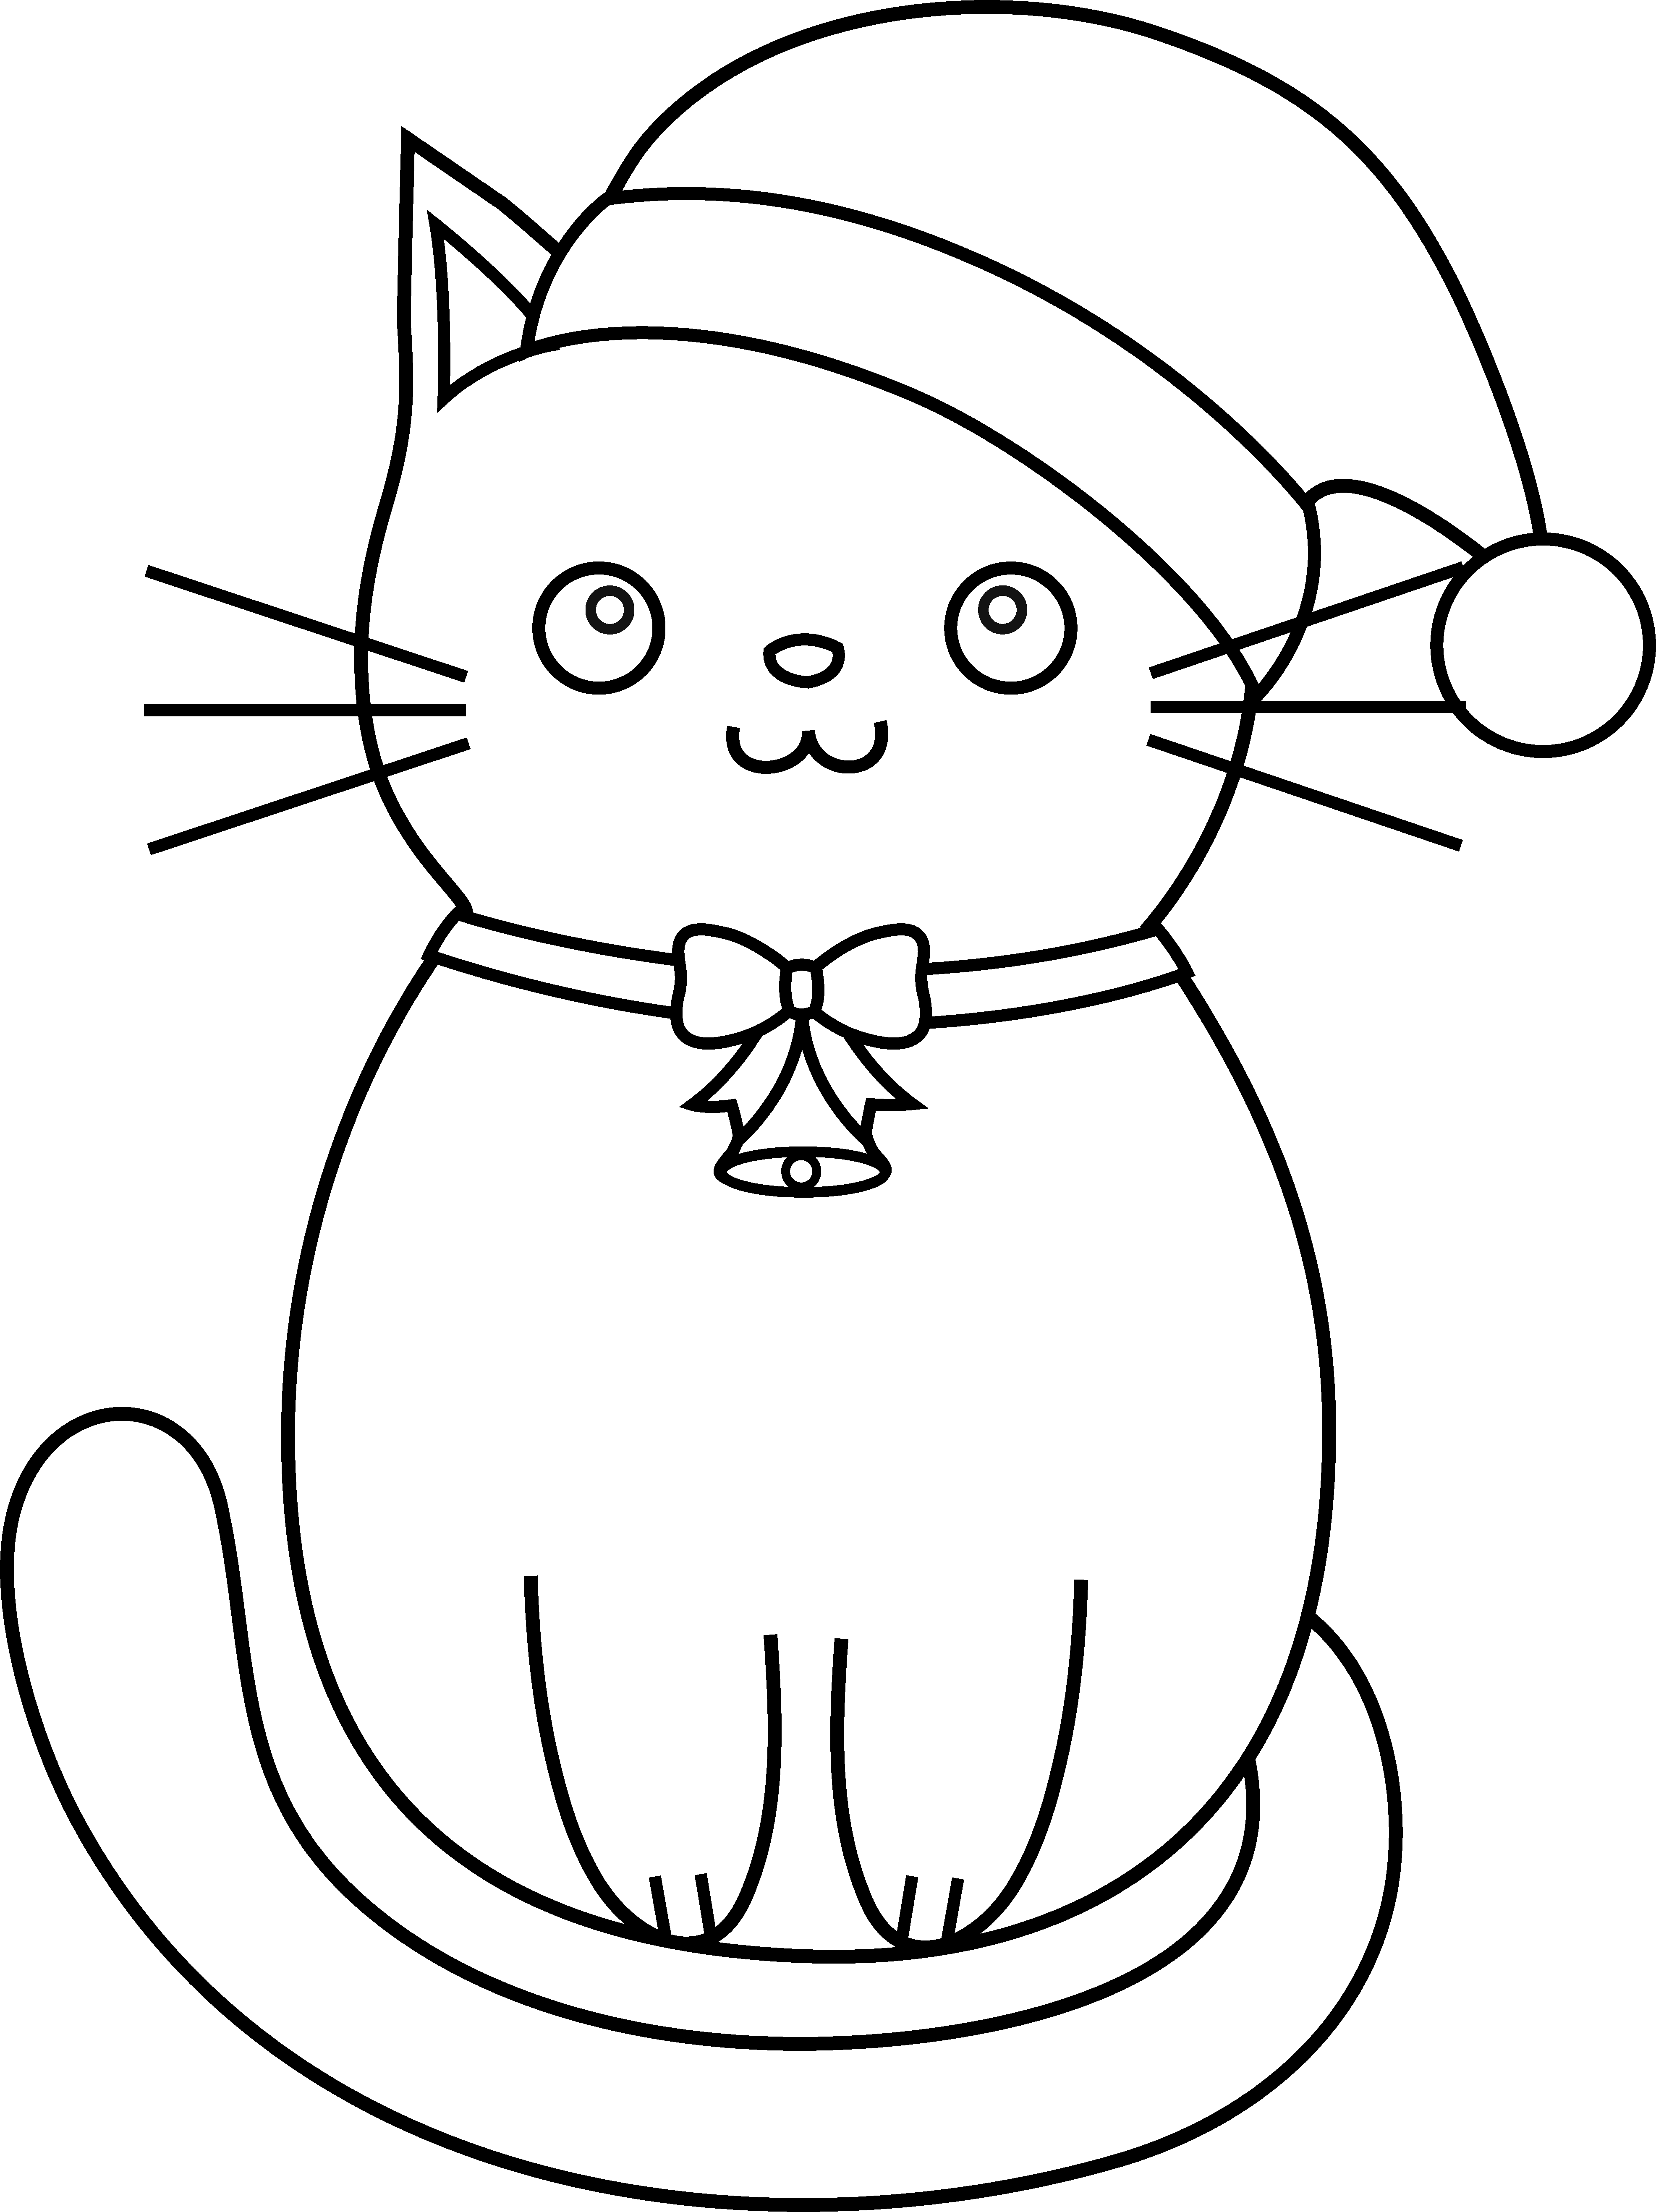 kitty cat pictures to color kitten coloring pages best coloring pages for kids color to kitty pictures cat